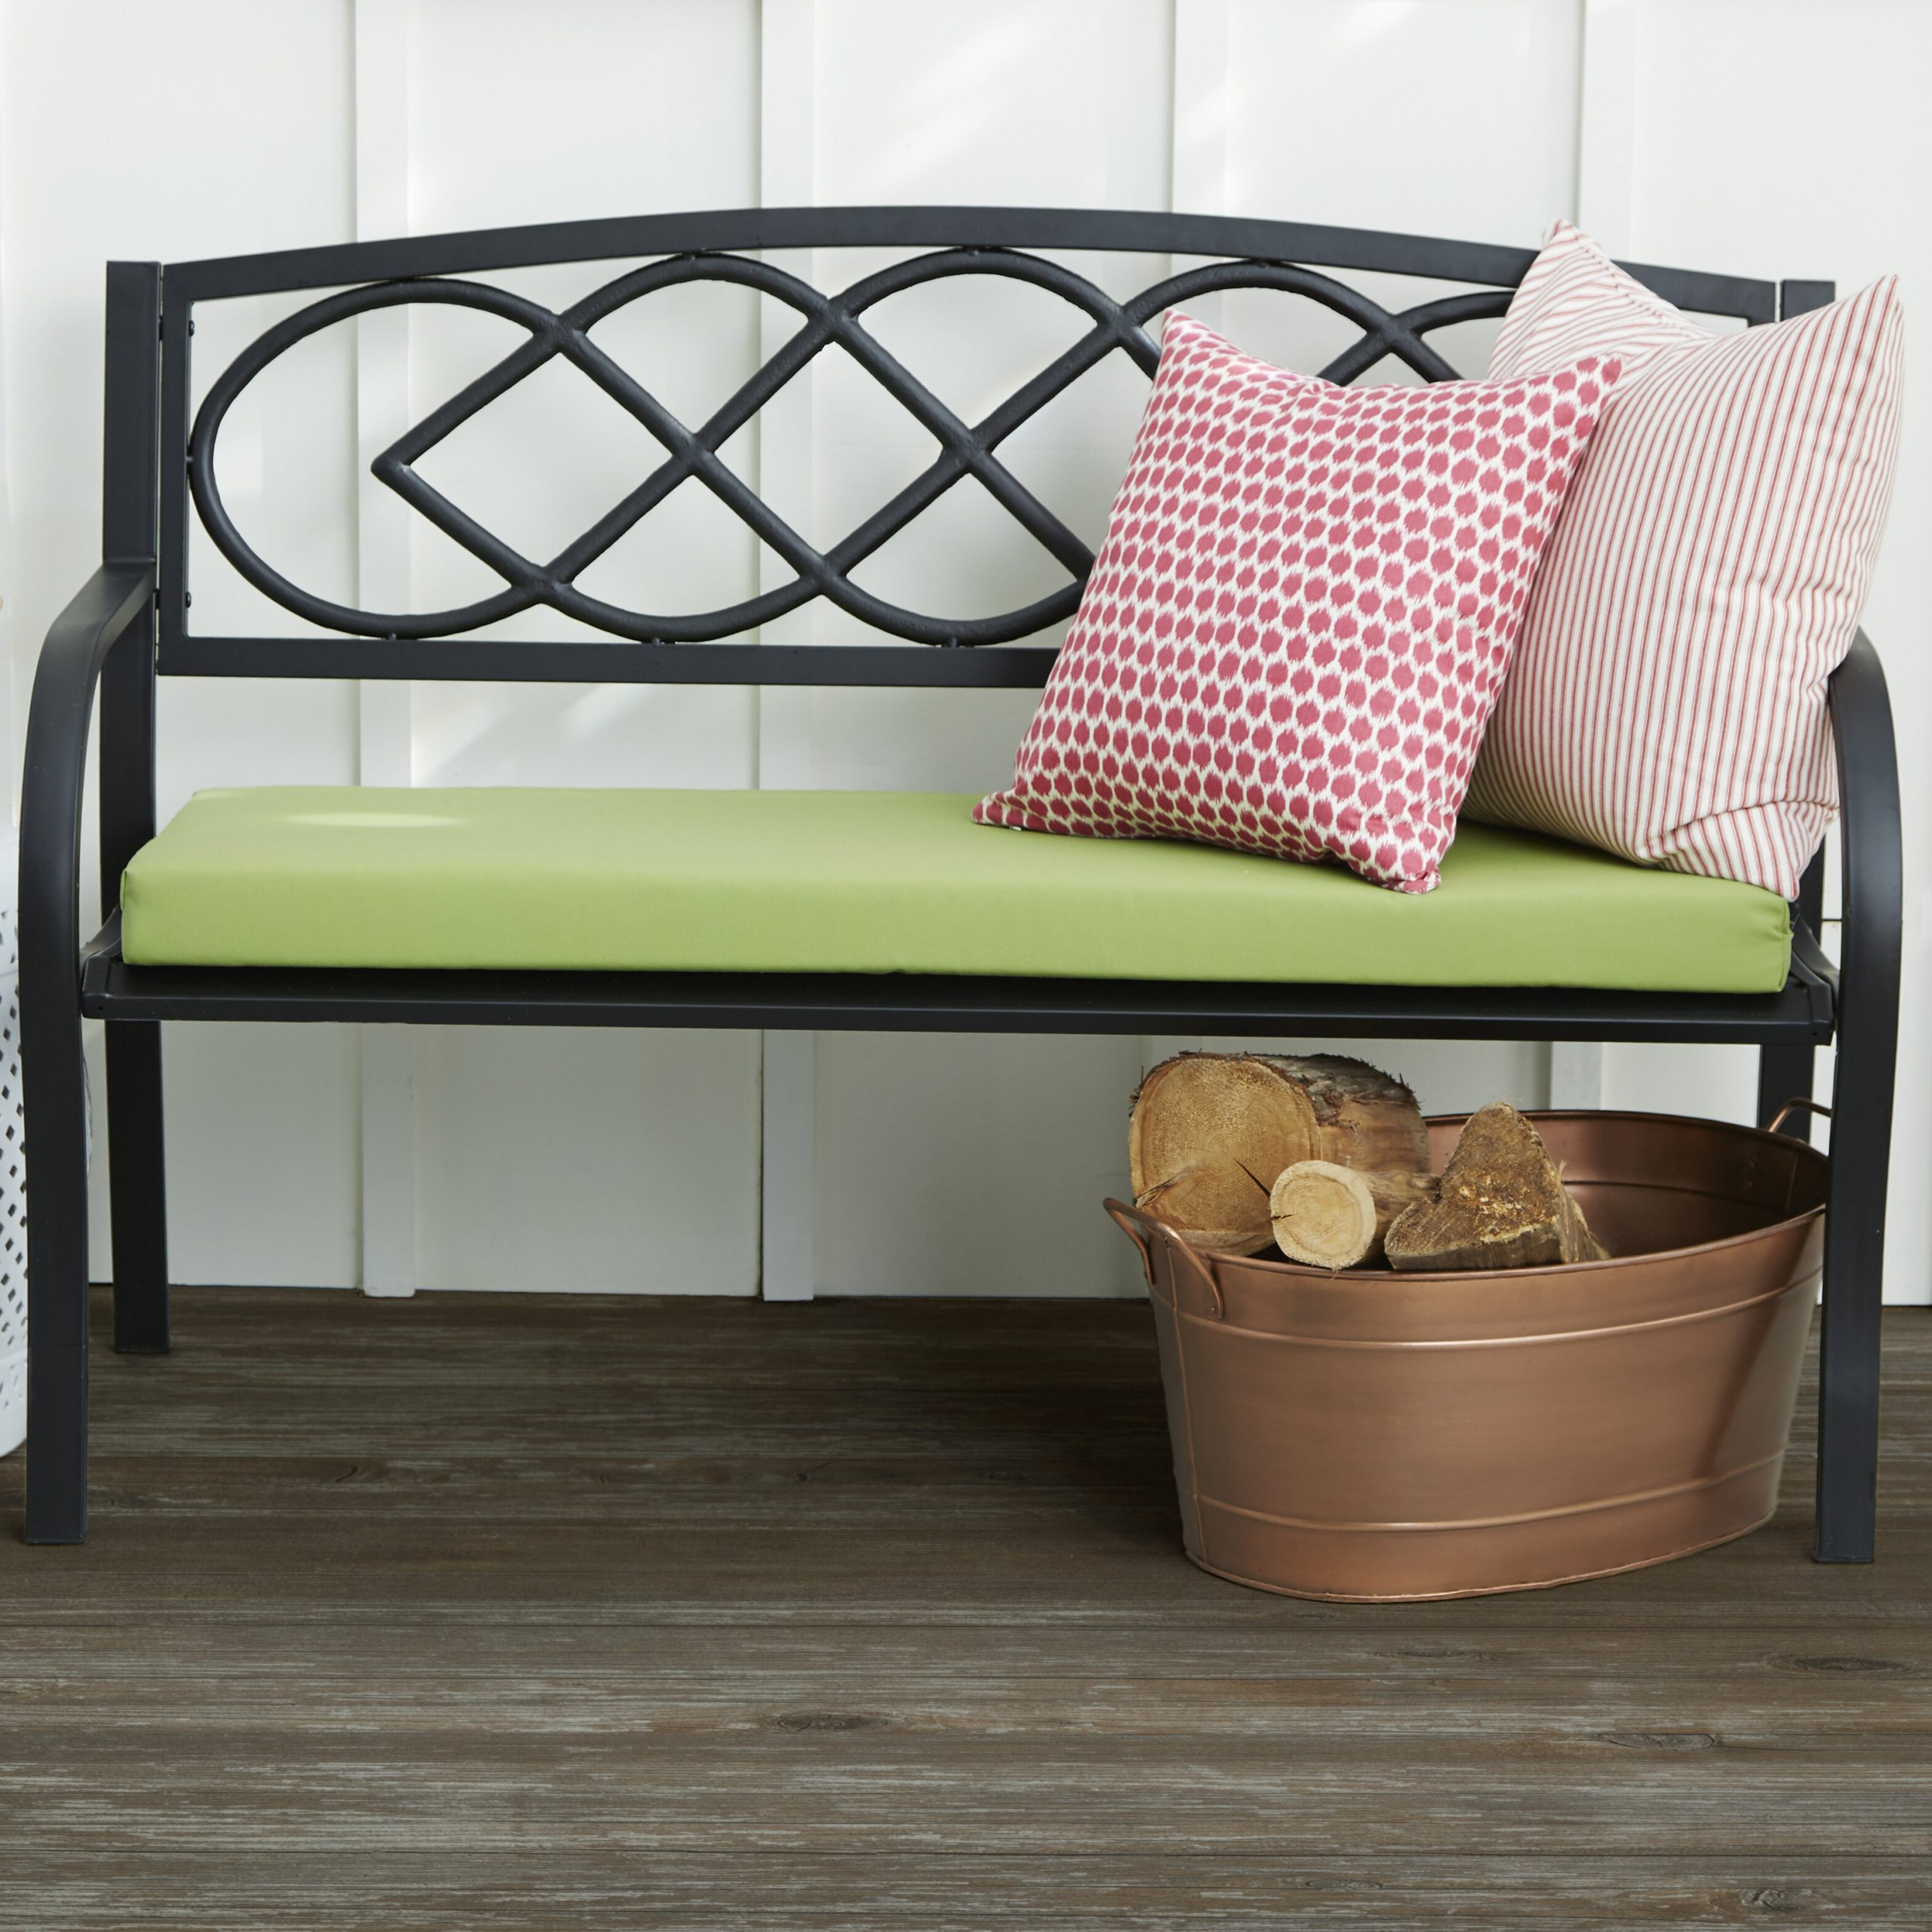 Madeline Vintage Bird Cast Iron Garden Benches With Well Known Celtic Knot Iron Garden Bench (View 4 of 30)